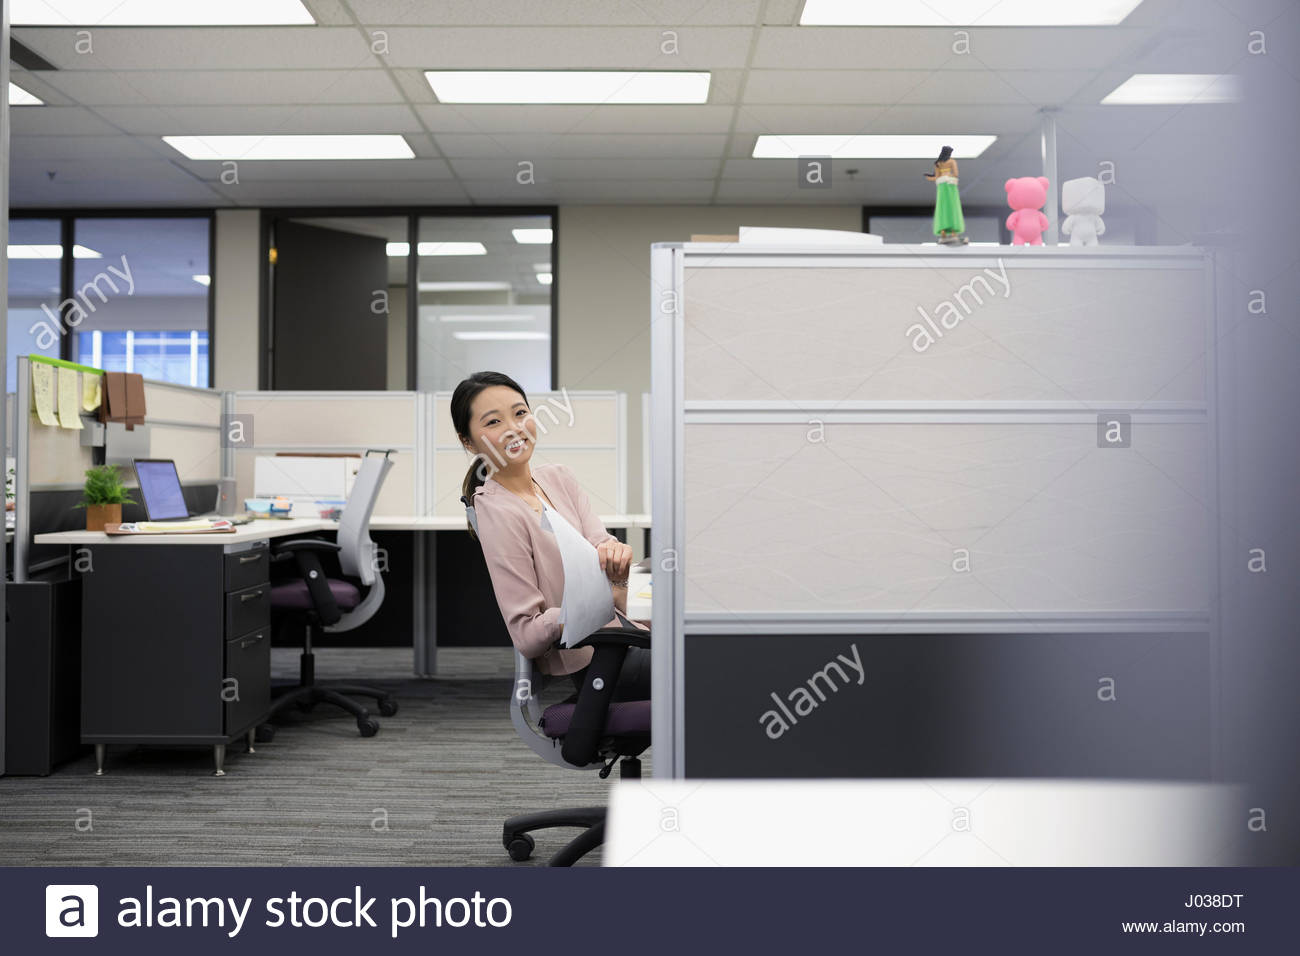 office cubical. Portrait Smiling Businesswoman With Paperwork At Office Cubicle Cubical H